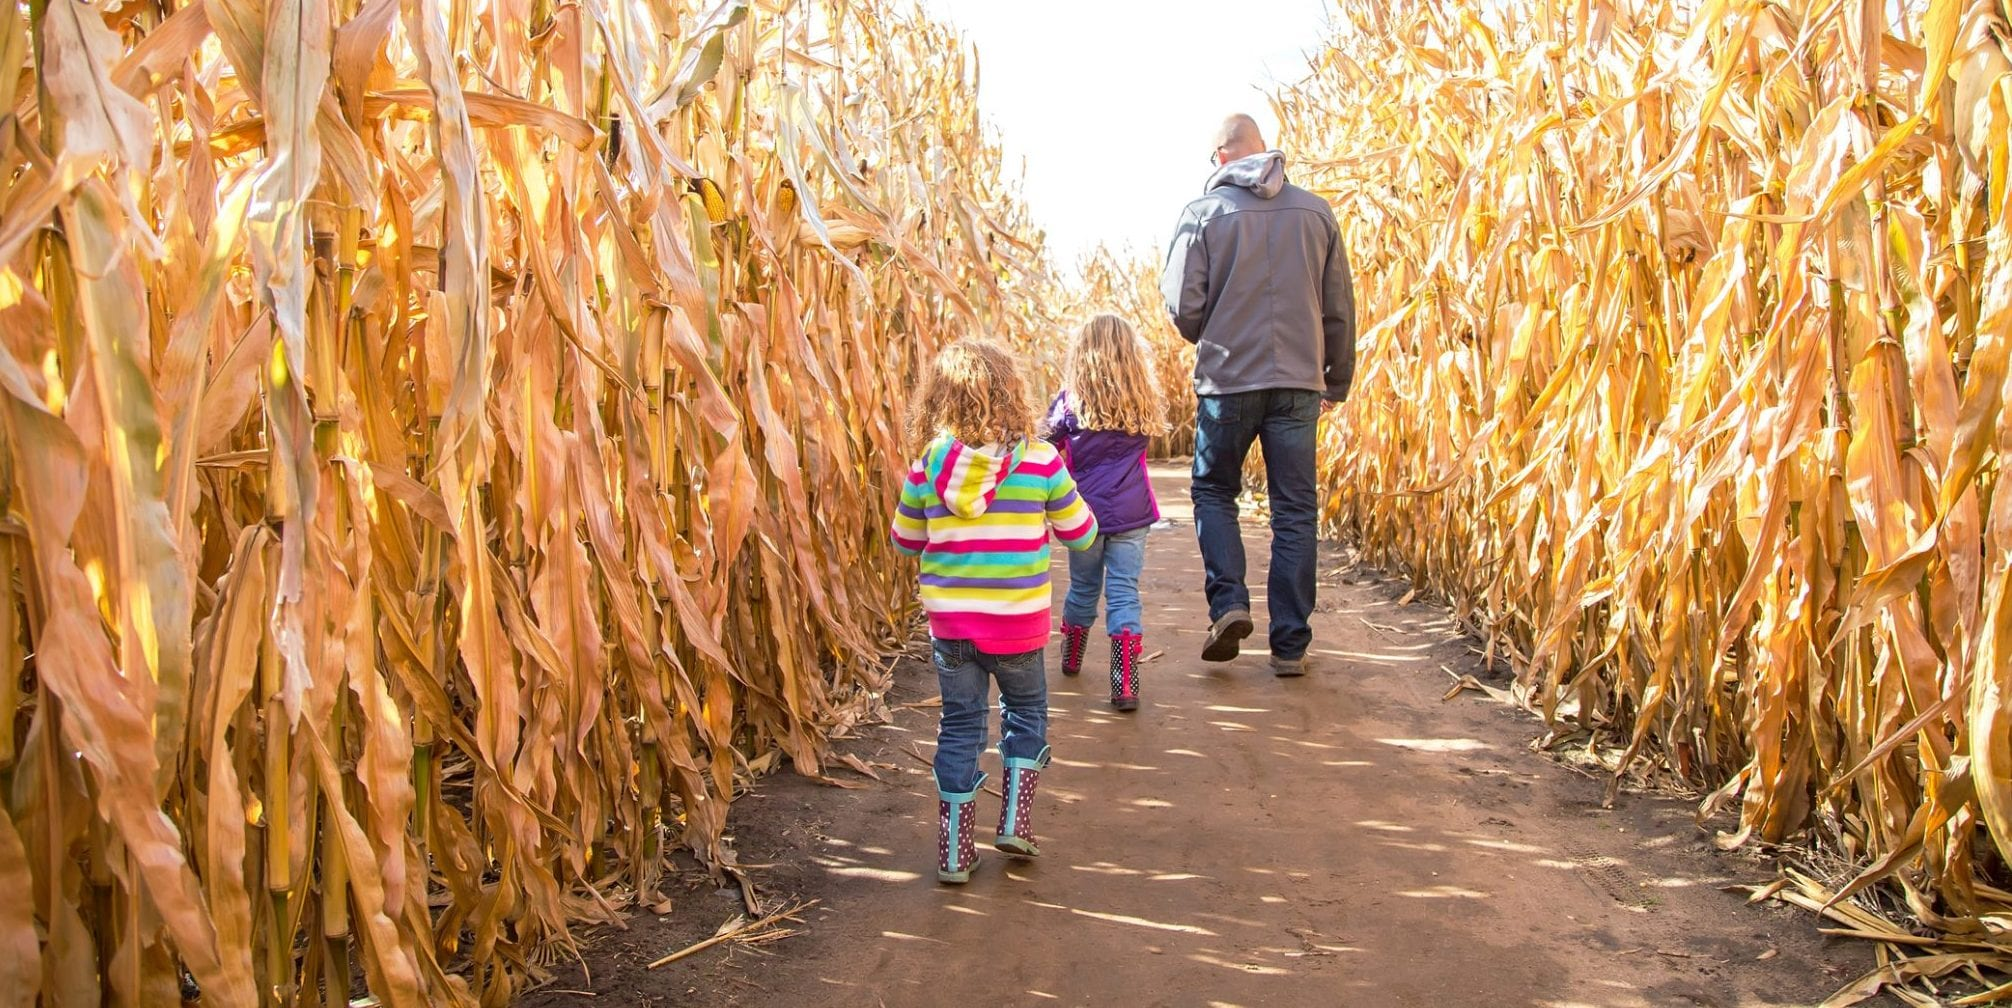 image of people walking through a corn maze